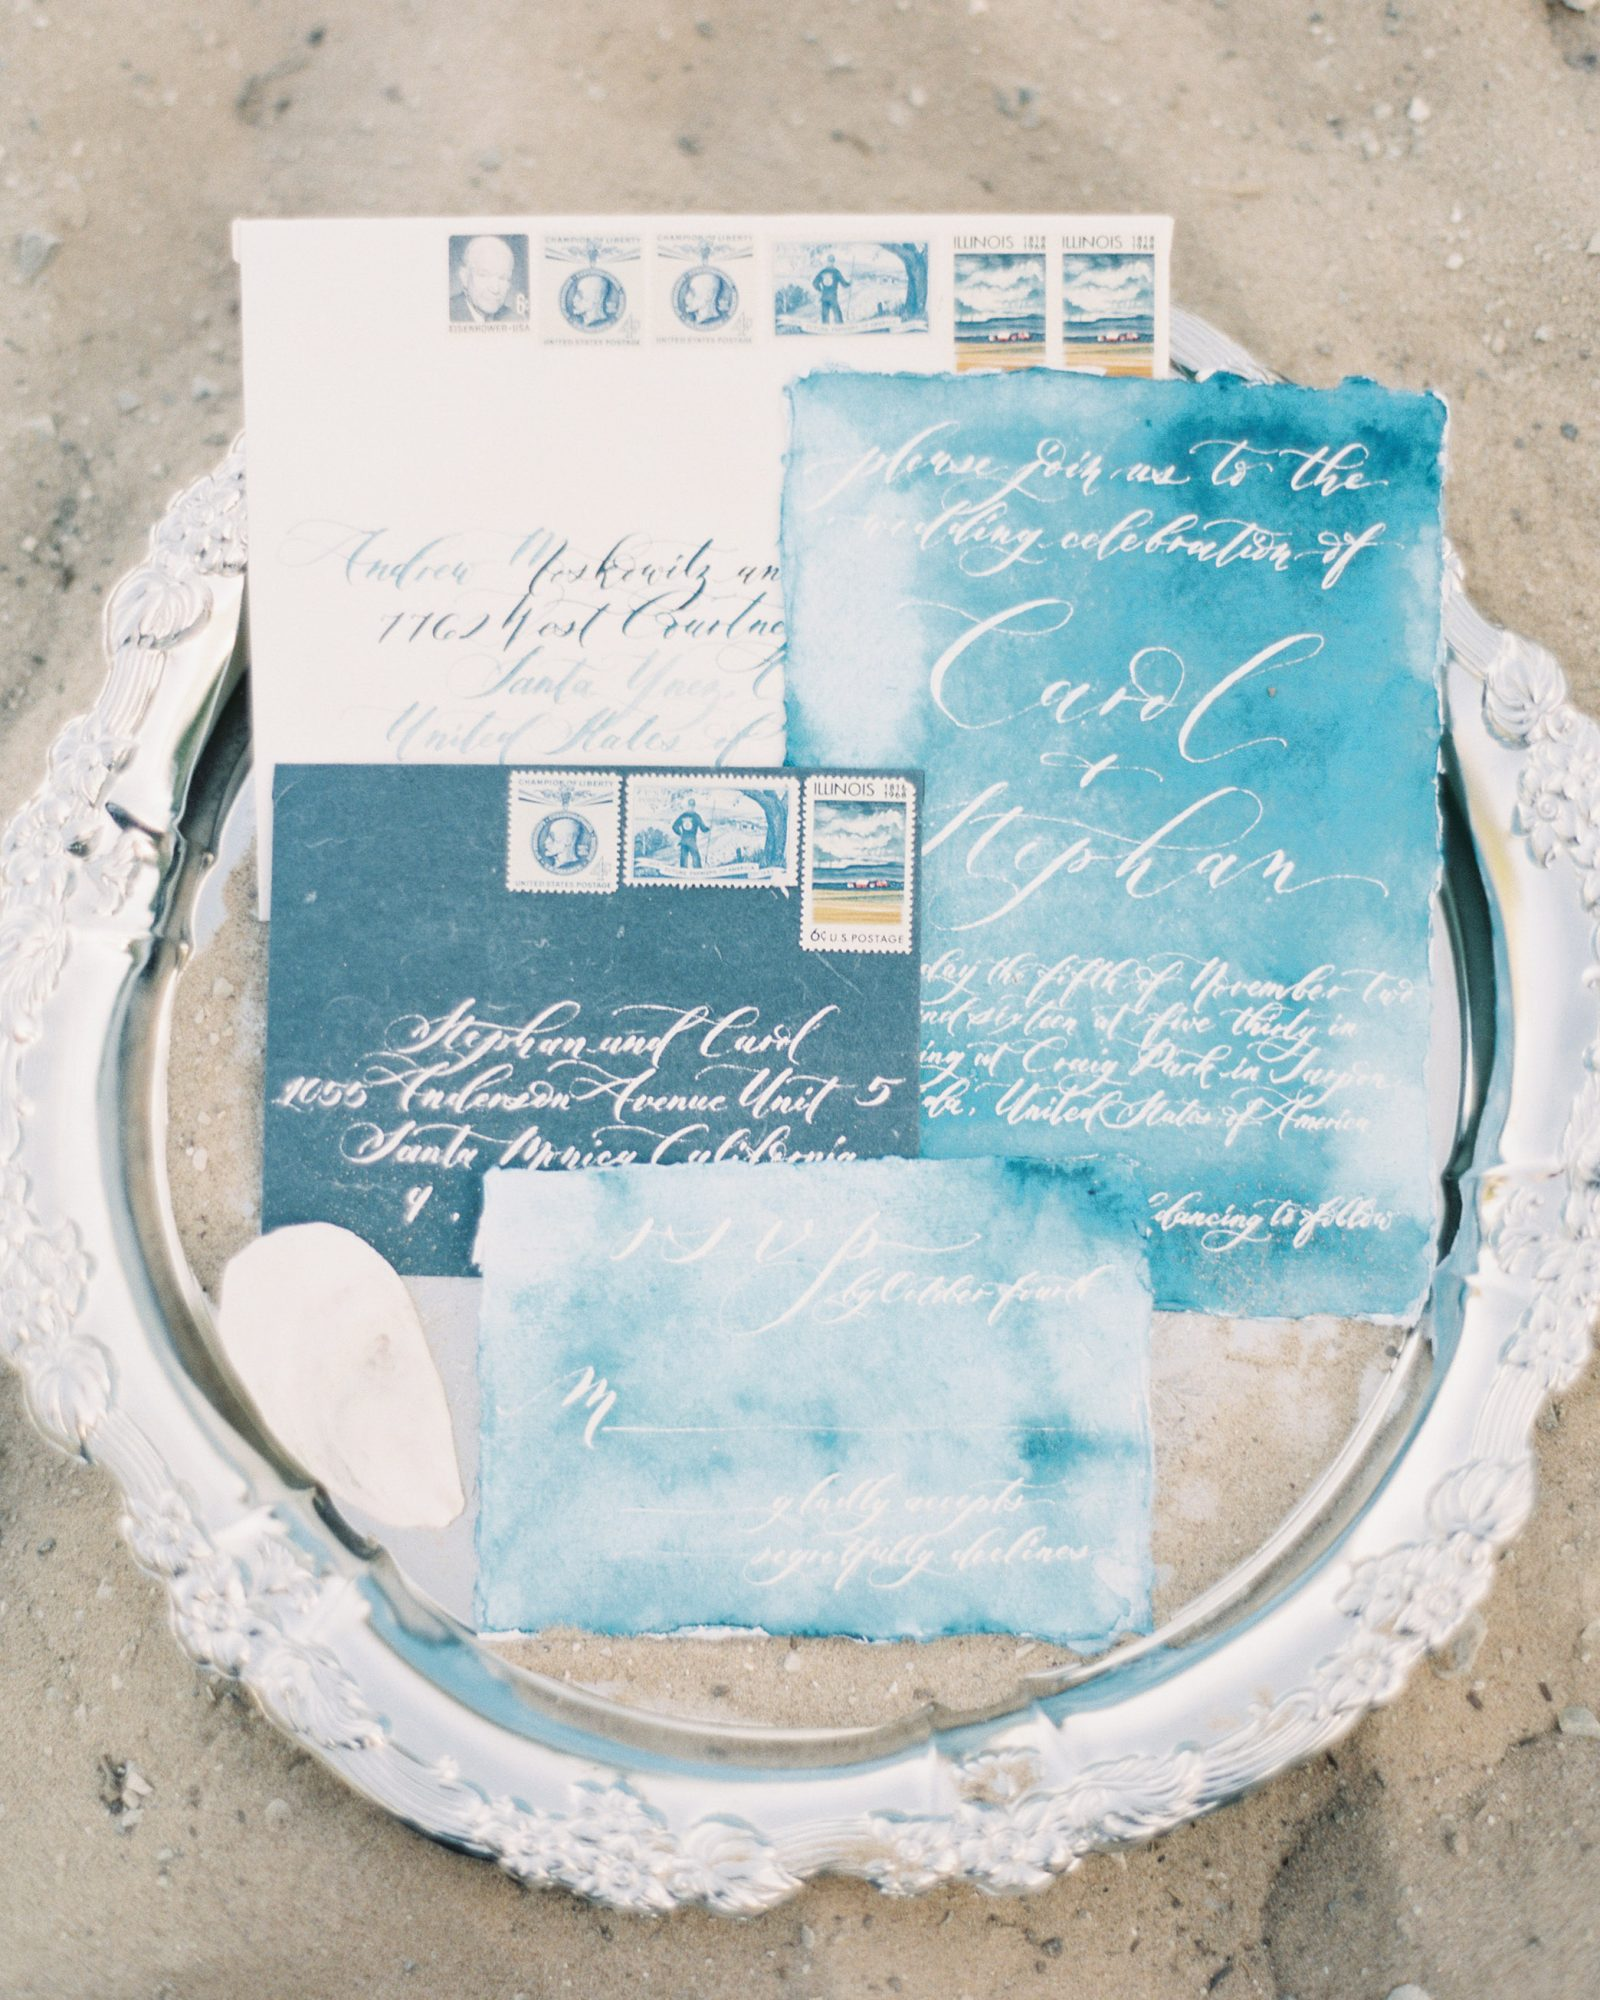 Lest we forget all the freshwater beaches out there, here's an example designed for a Lake Michigan celebration. Seniman Calligraphy used dreamy watercolors to create the stationery suite.